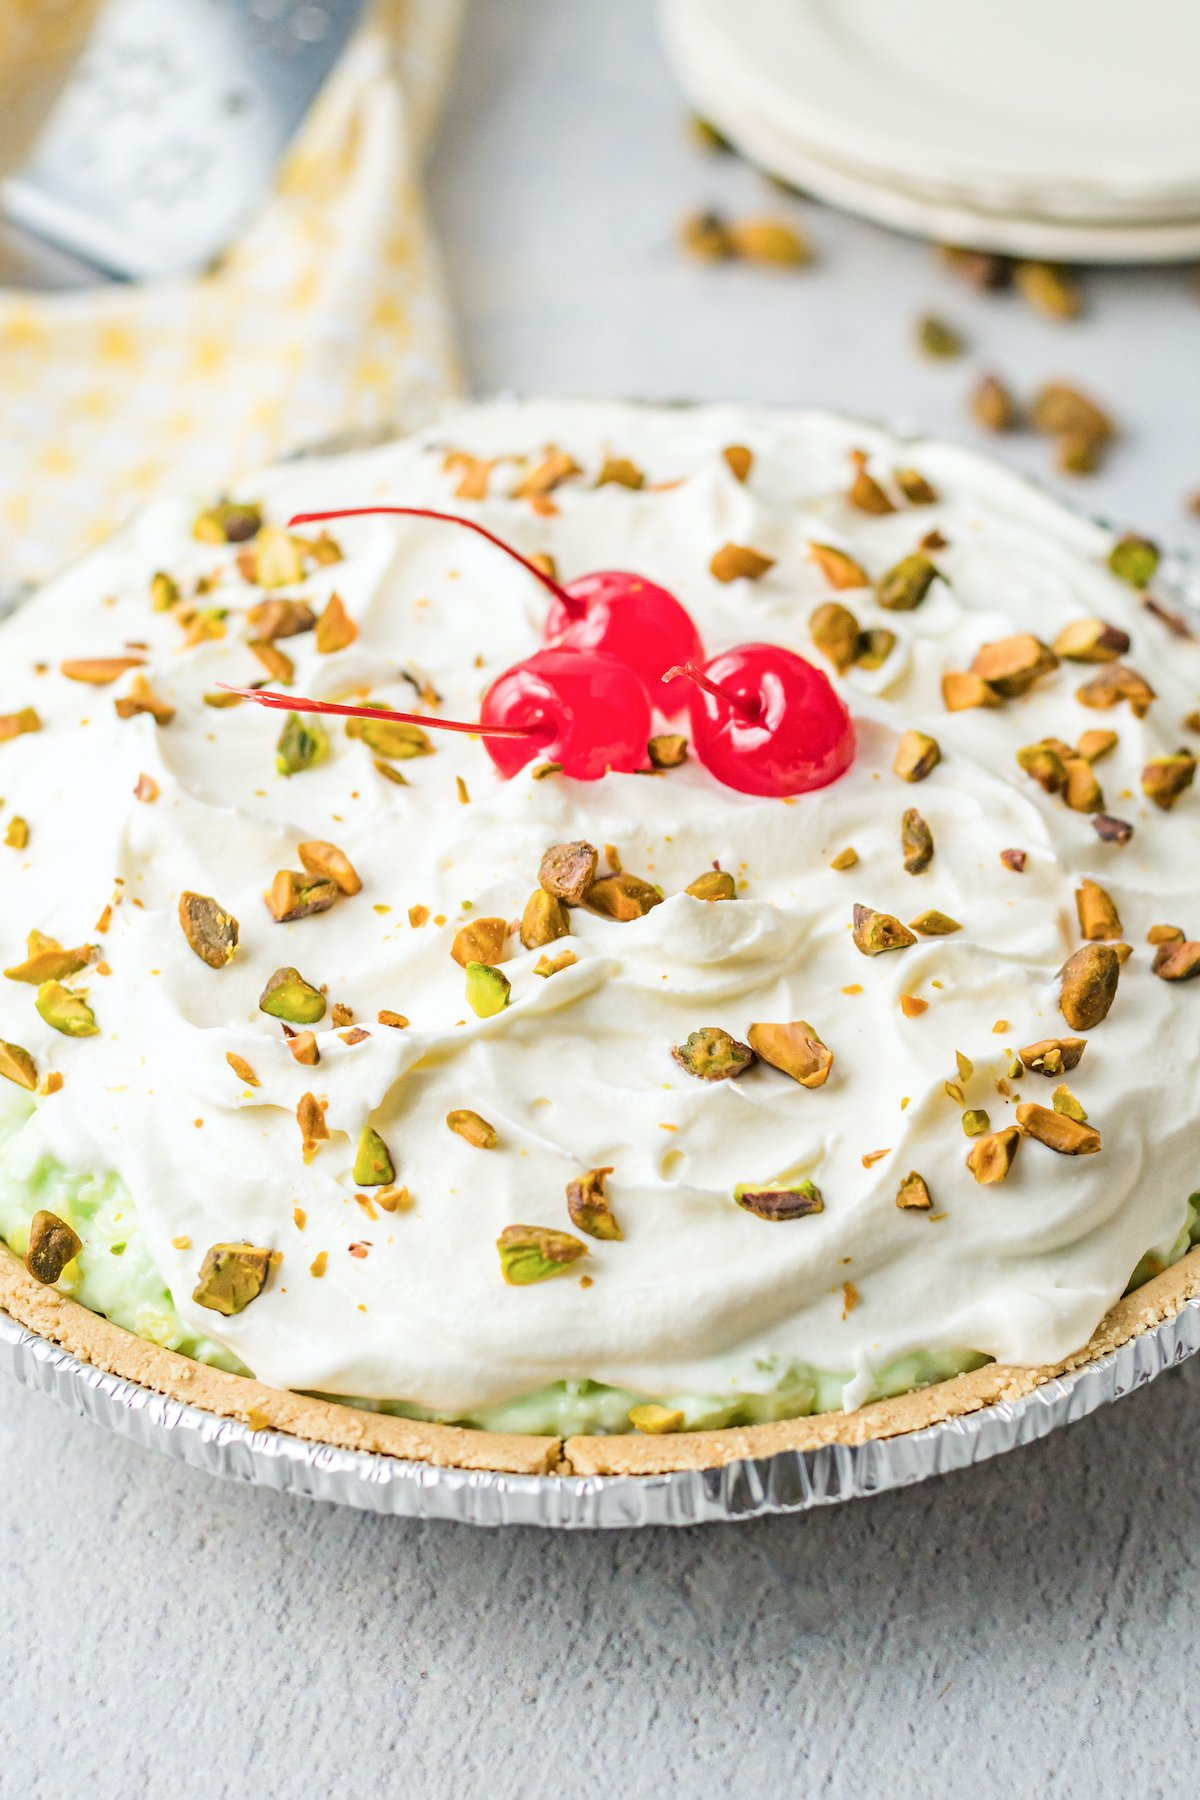 An uncut pistachio pie topped with whipped cream, chopped pistachios, and maraschino cherries.